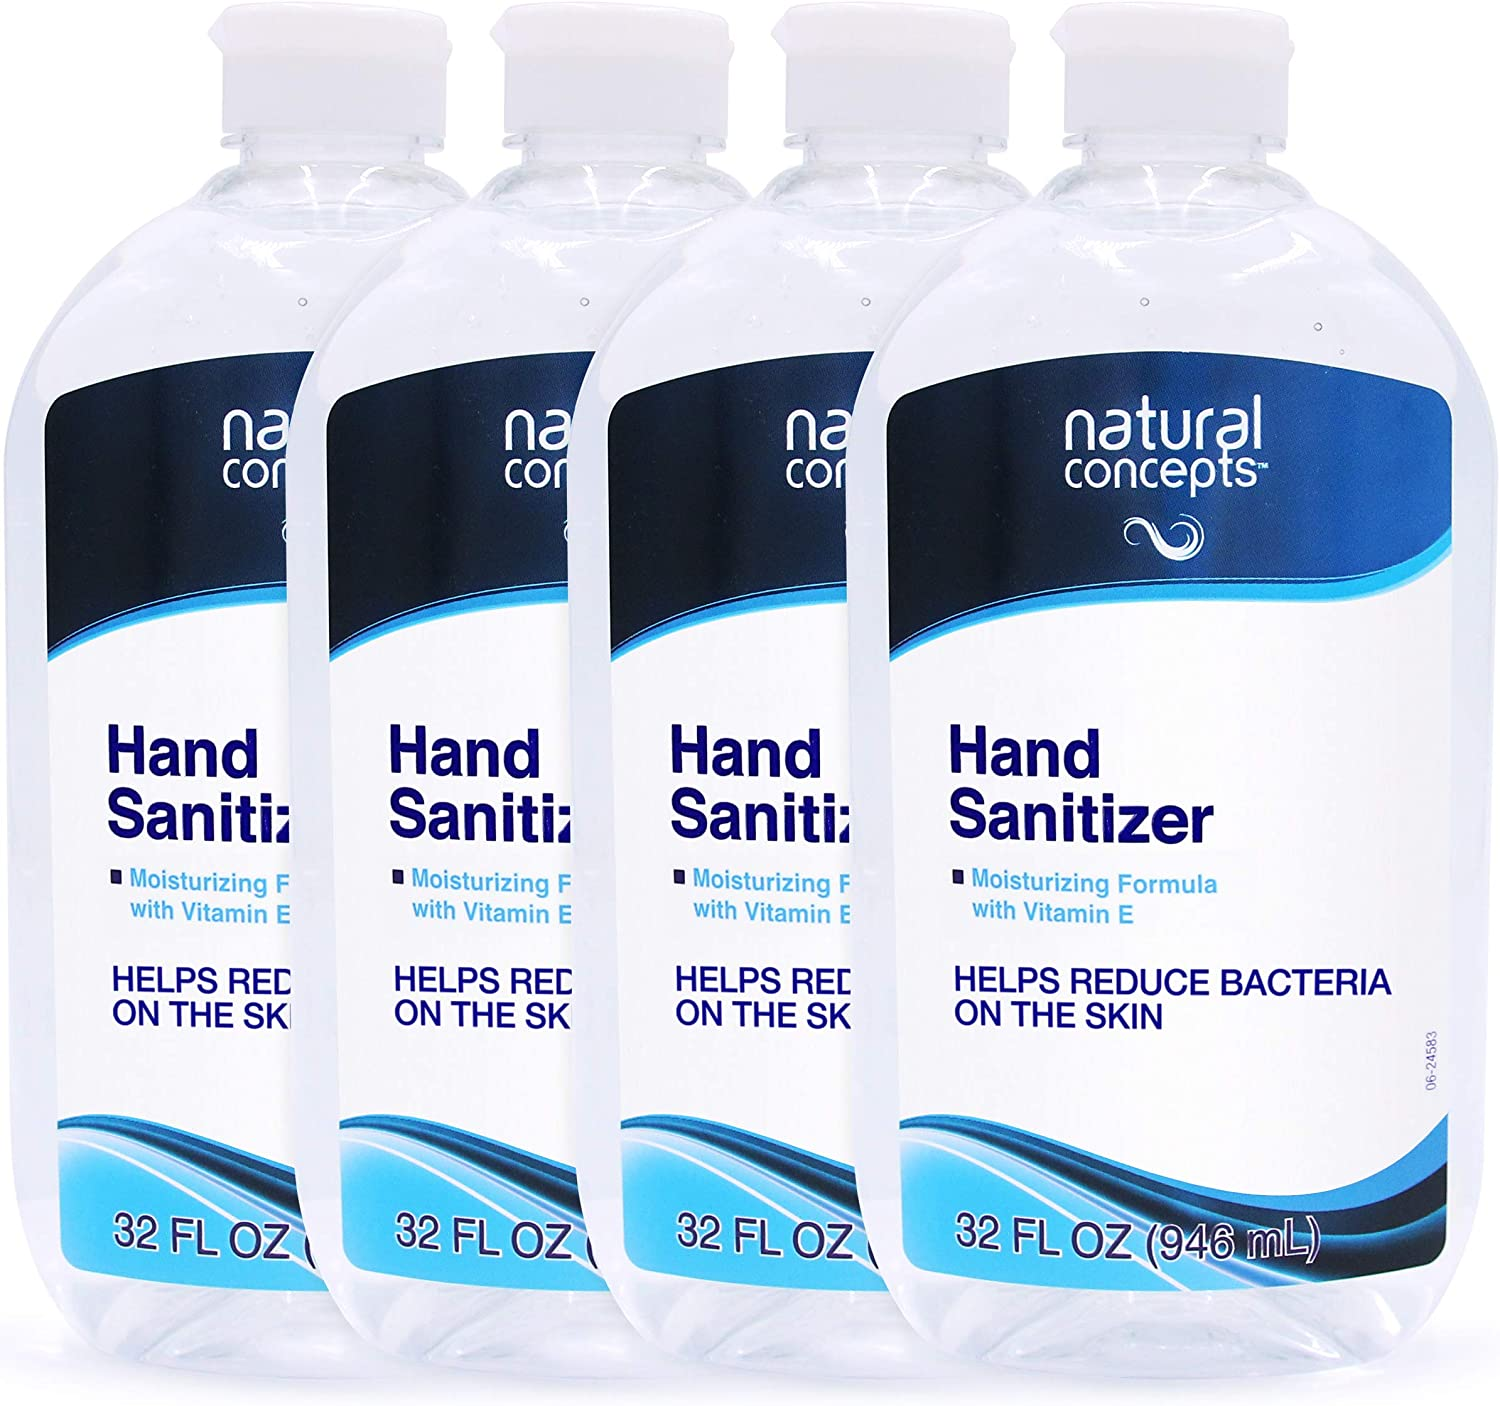 Natural Concepts Hand Sanitizer Gel, Value Pack of 4, 32 oz Bottles, 65% Ethyl Alcohol with Vitamin E, Protects Against Germs On-The-Go: Health & Personal Care